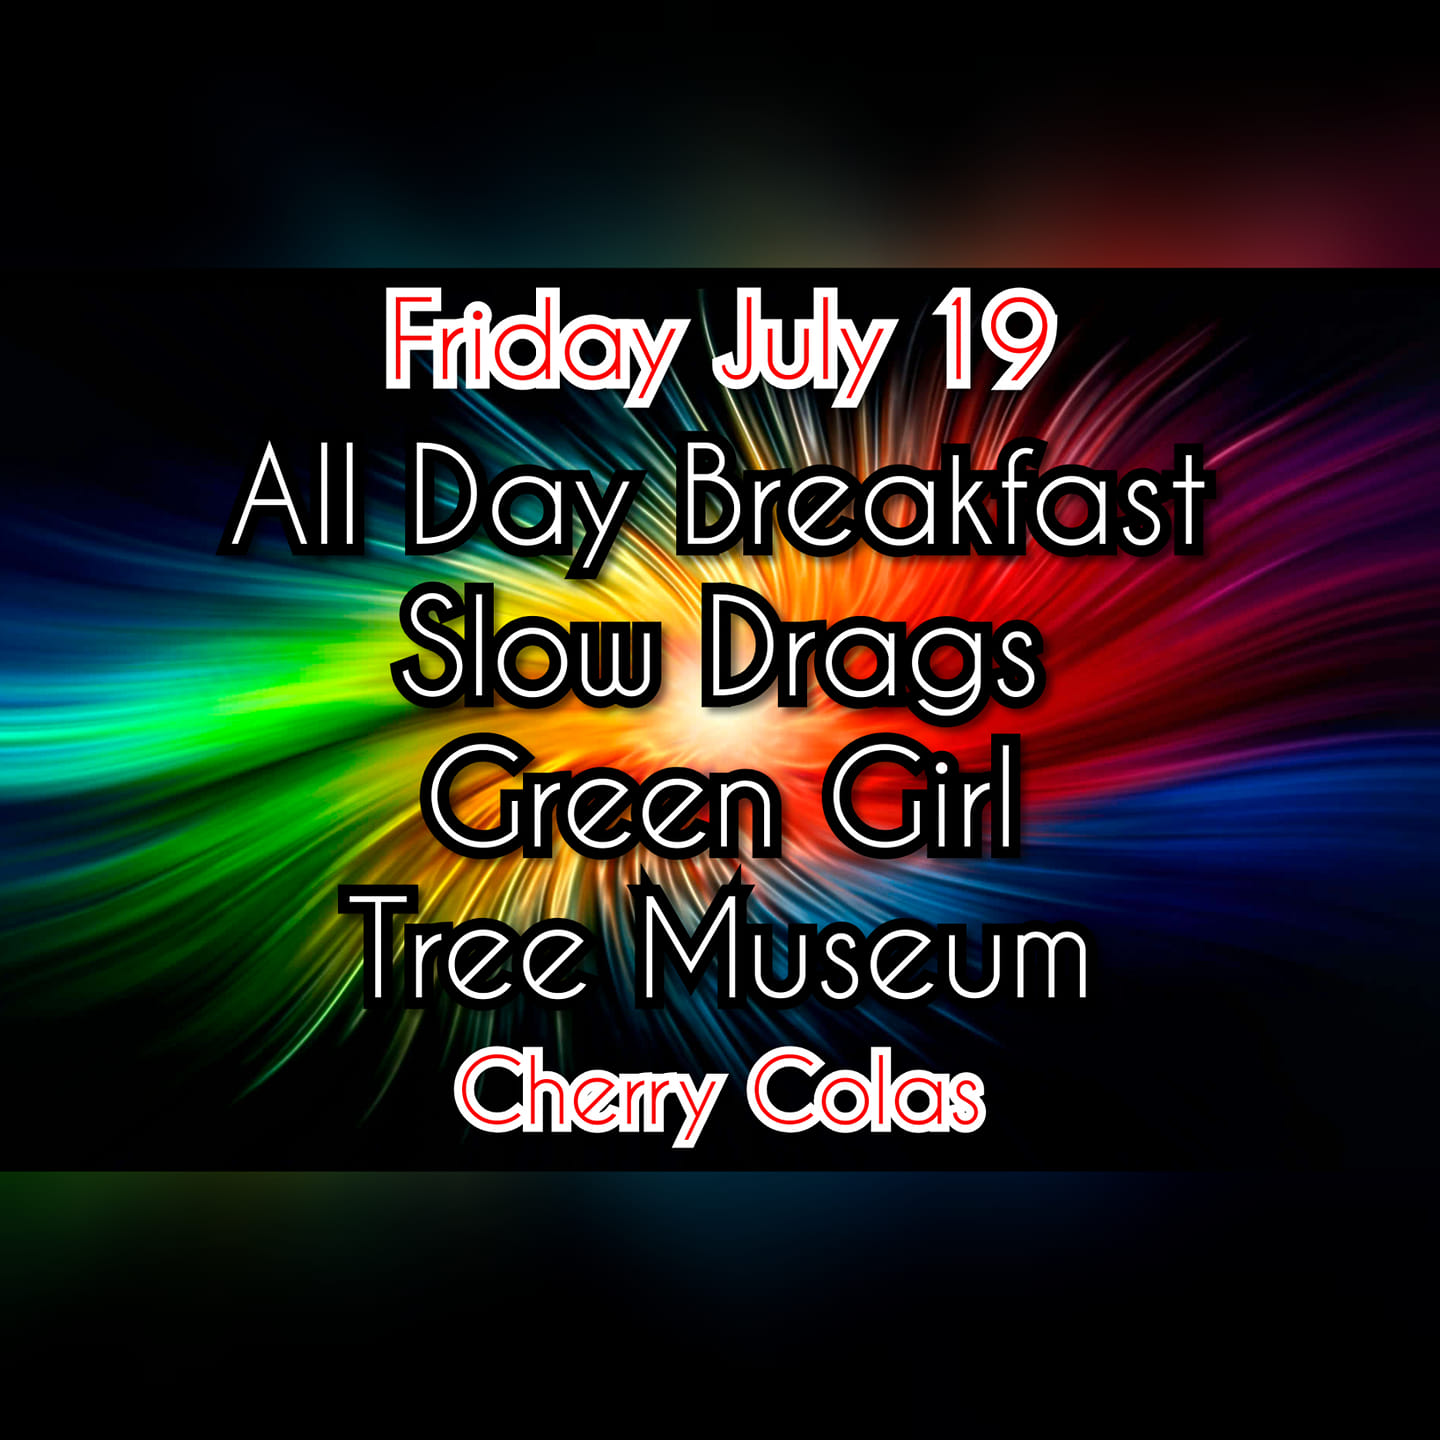 All Day Breakfast/Slow Drags/Green Girl/Tree Museum @ Cherry Cola's Rock 'n' Rolla Cabaret & Lounge